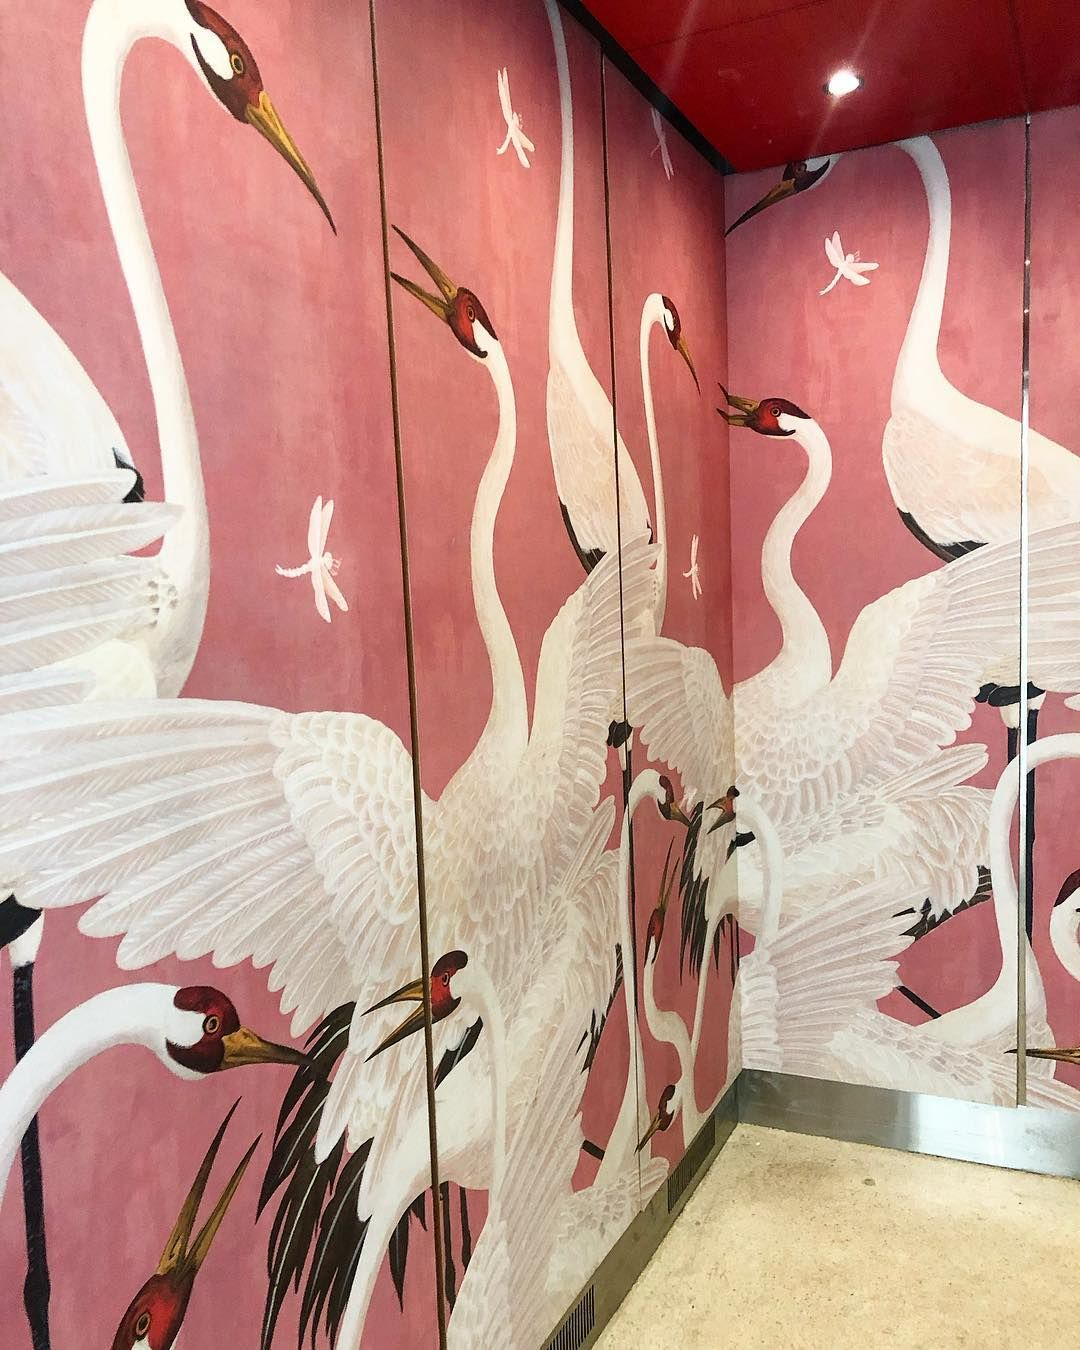 I Grew Up In A Pink Bedroom Not By Choice So I Have A Tricky Relationship With The Color This Gucci Heron Wallpaper I Saw Wallpaper Wall Painting Mural Art